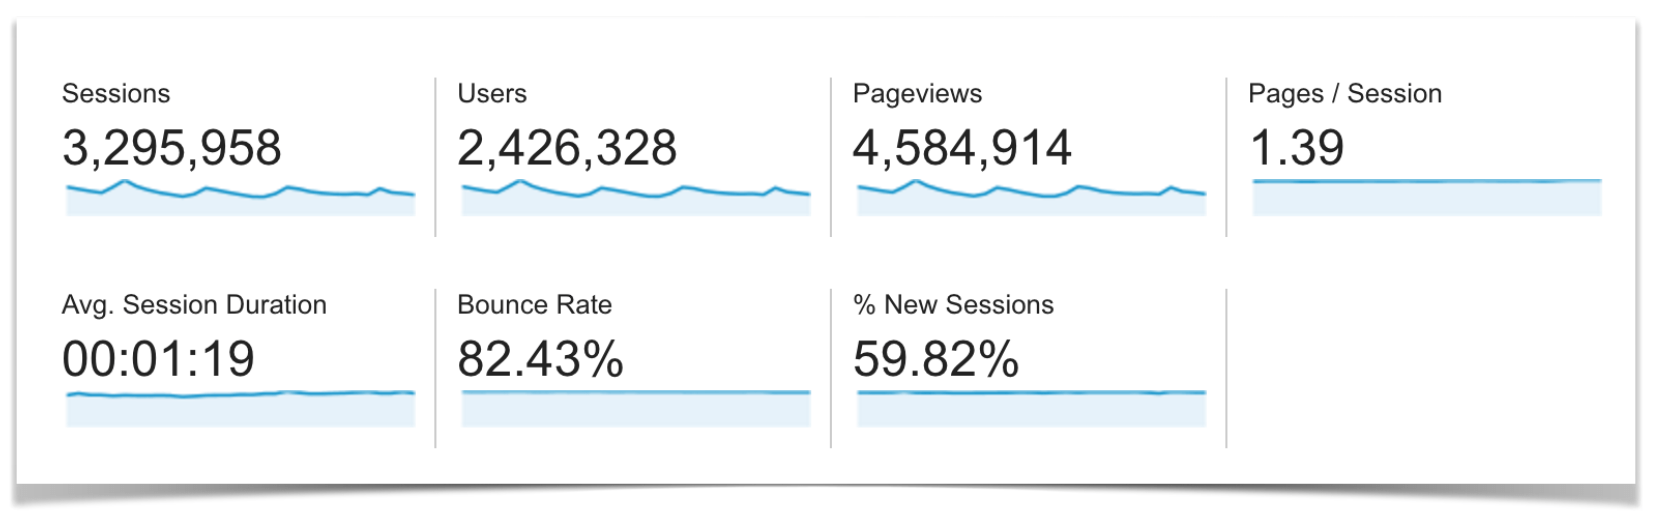 Google Analytics Traffic Overview for March